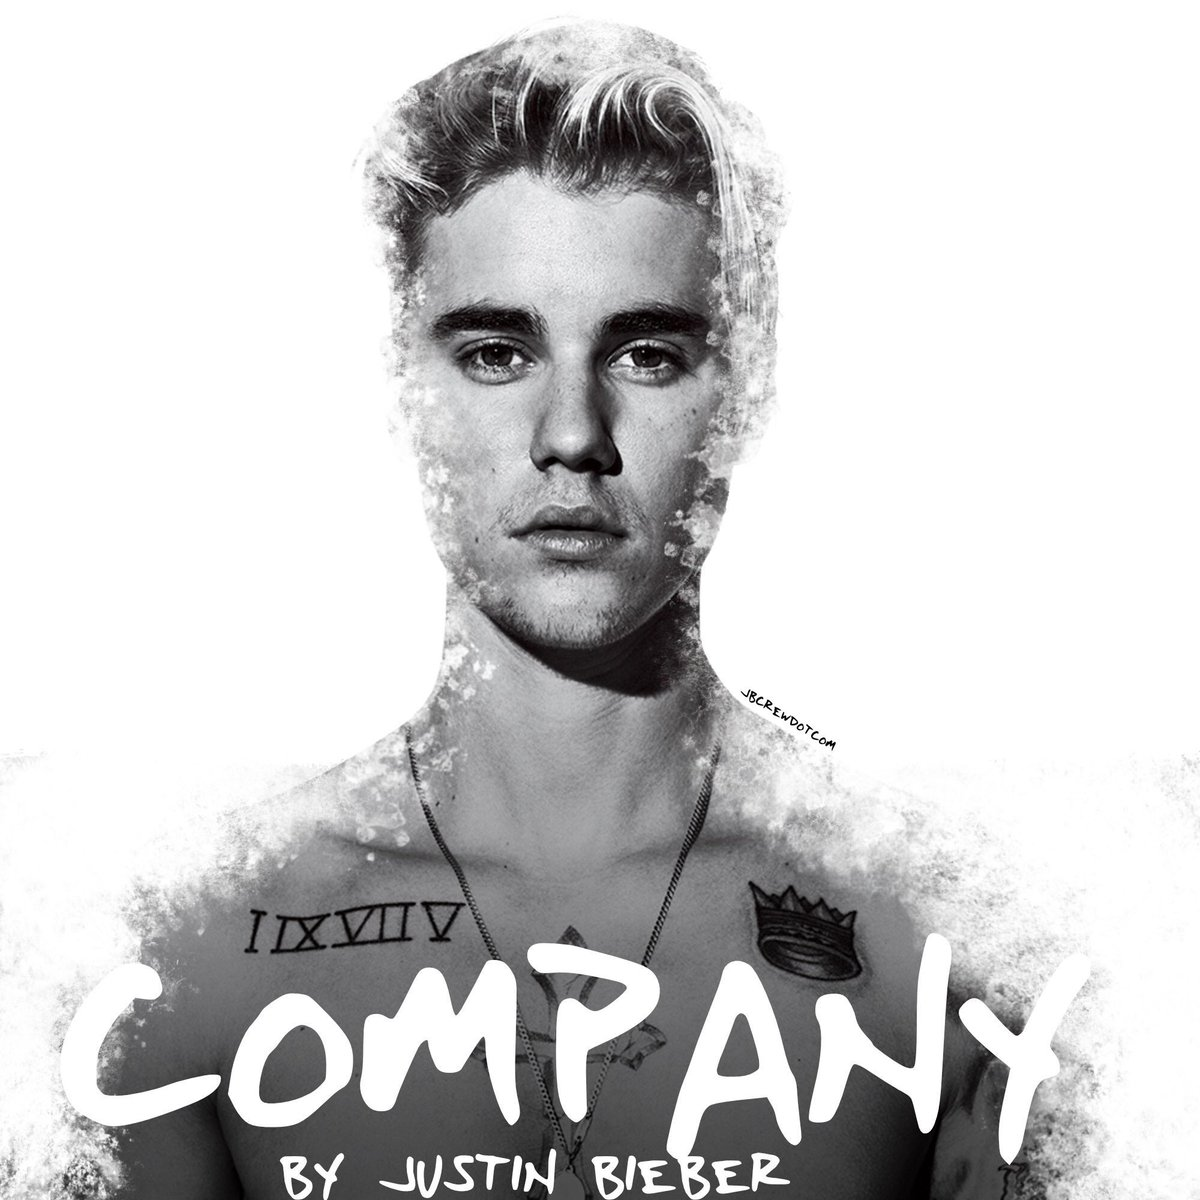 "#JacaTop20 @justinbieber maintains his steady climb up the chart with ""Company"" moving up to No.13 https://t.co/PnzFF4FWNq"